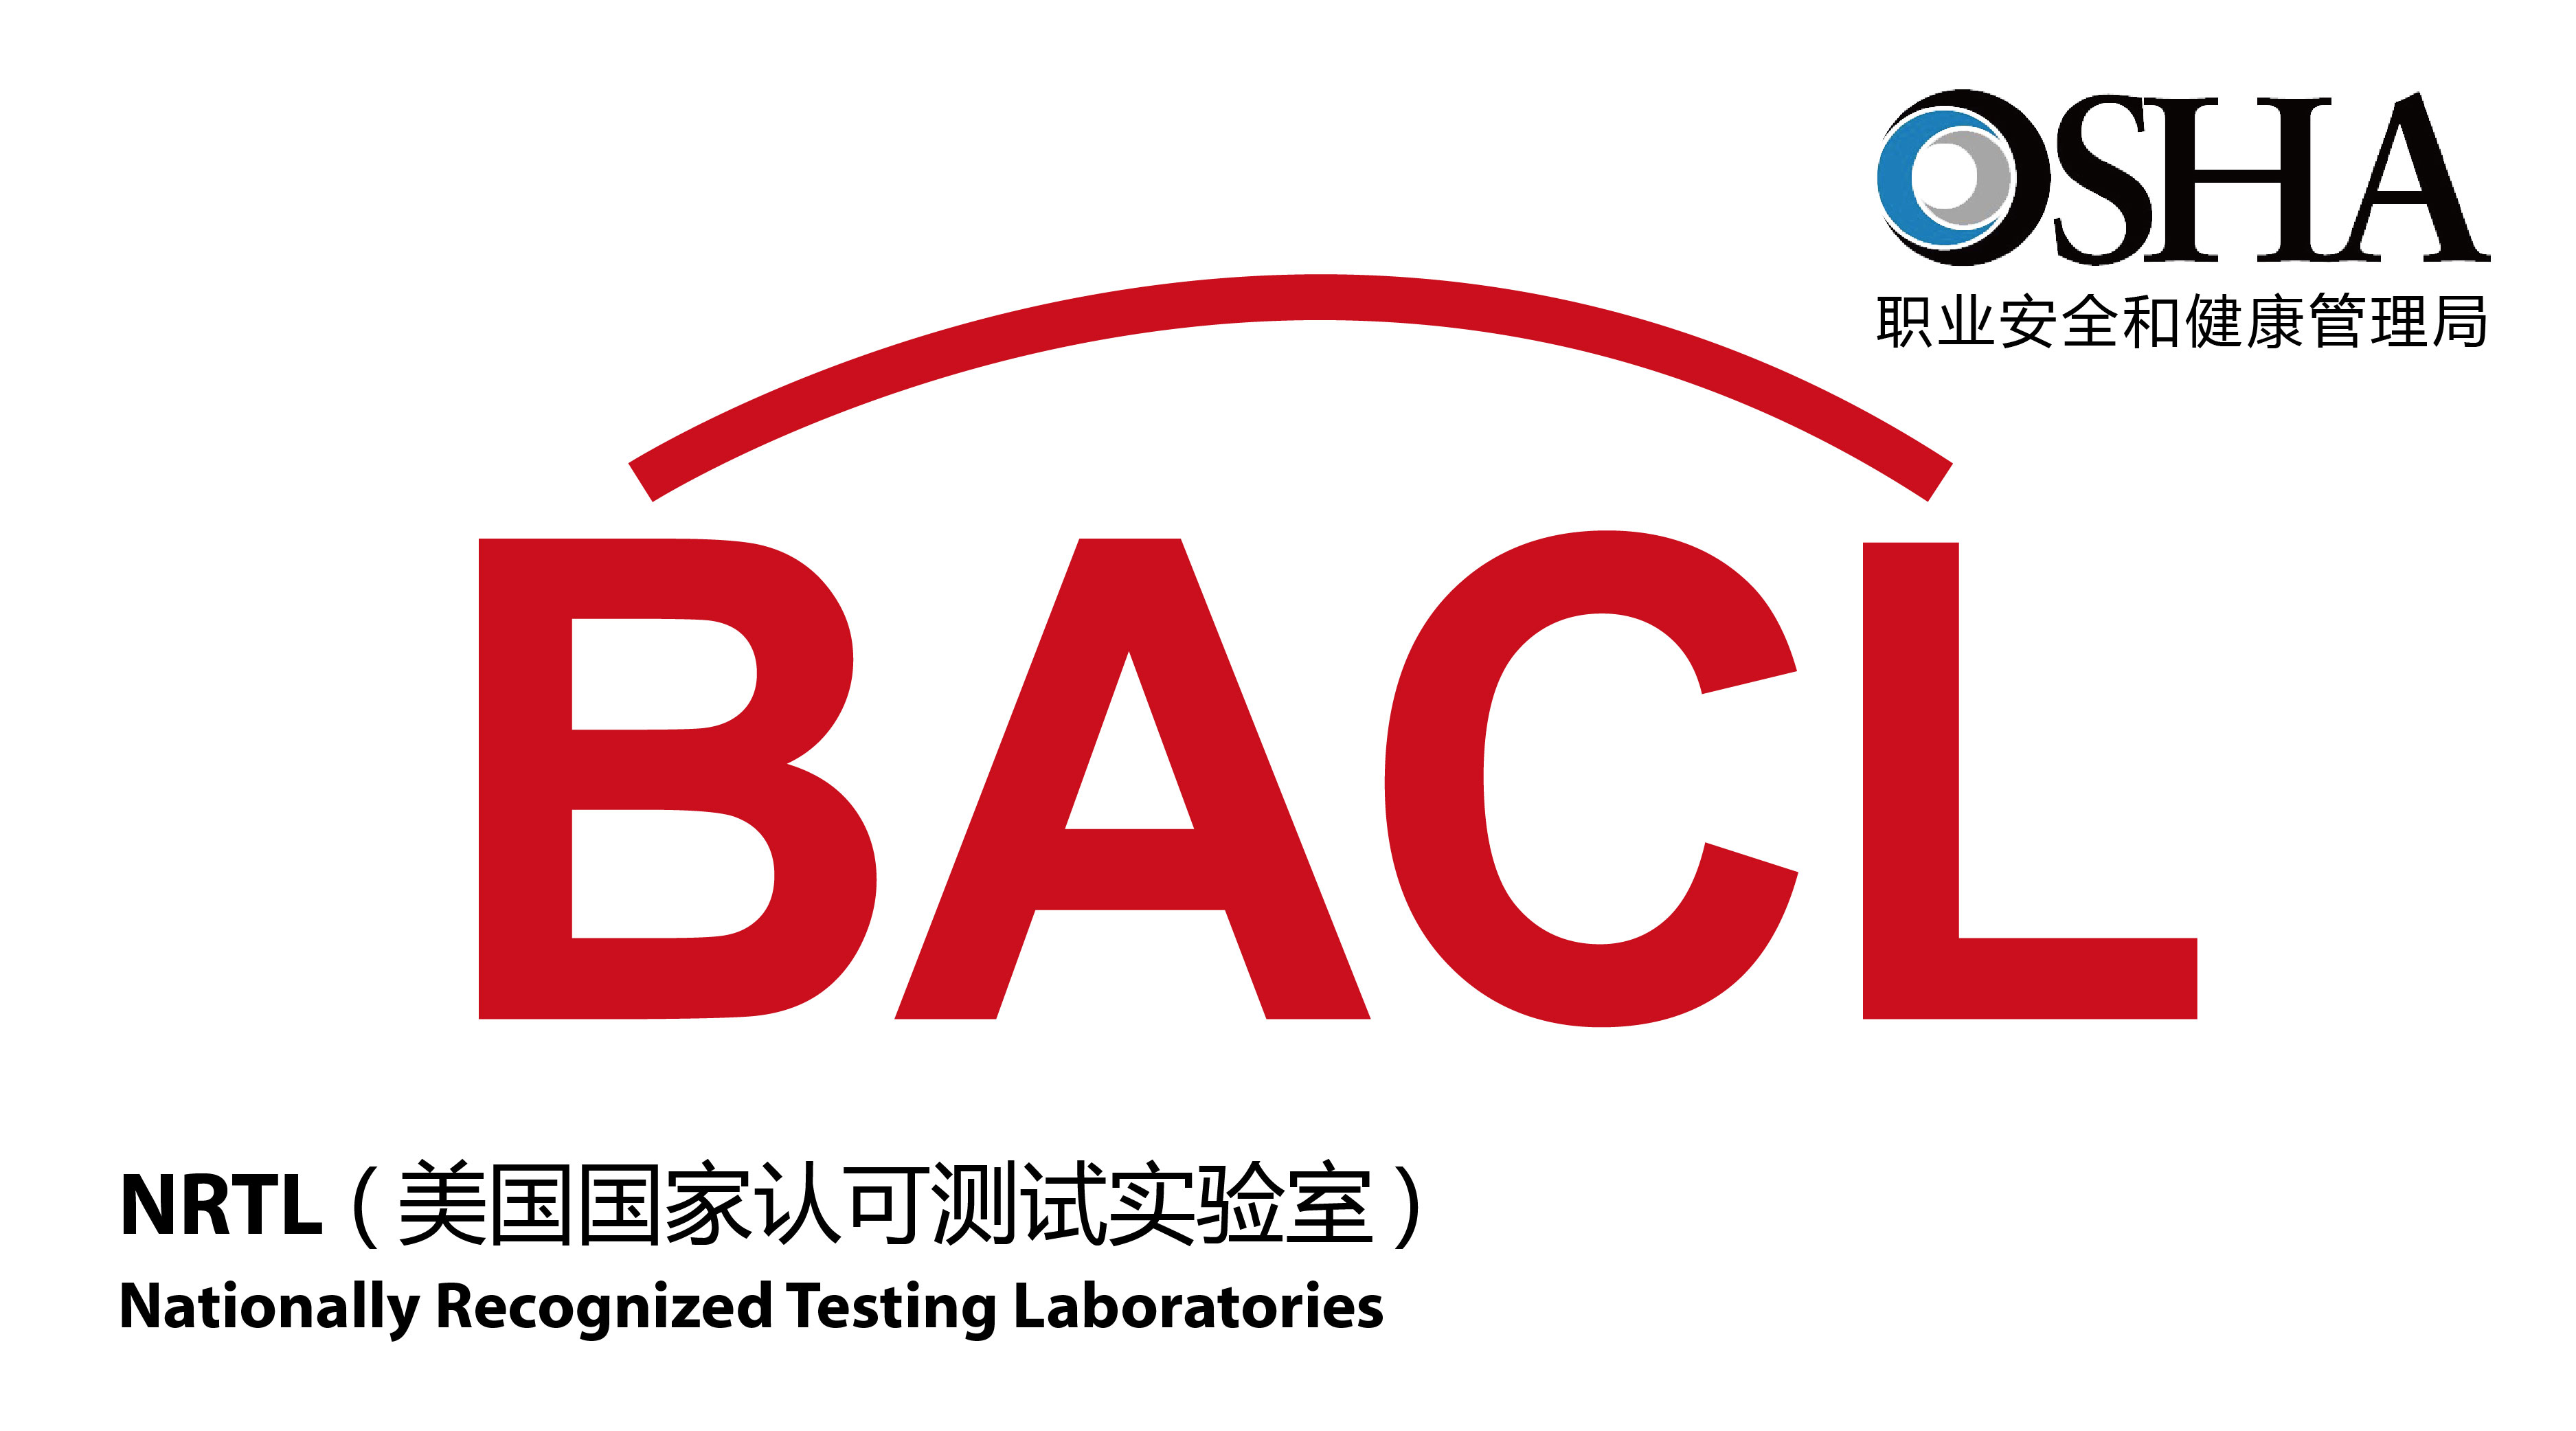 Great news congratulations that bacl was recognized by osha as a and health administration osha as the 16th nationally recognized testing laboratory nrtl this opened a new era of north american certification for xflitez Choice Image